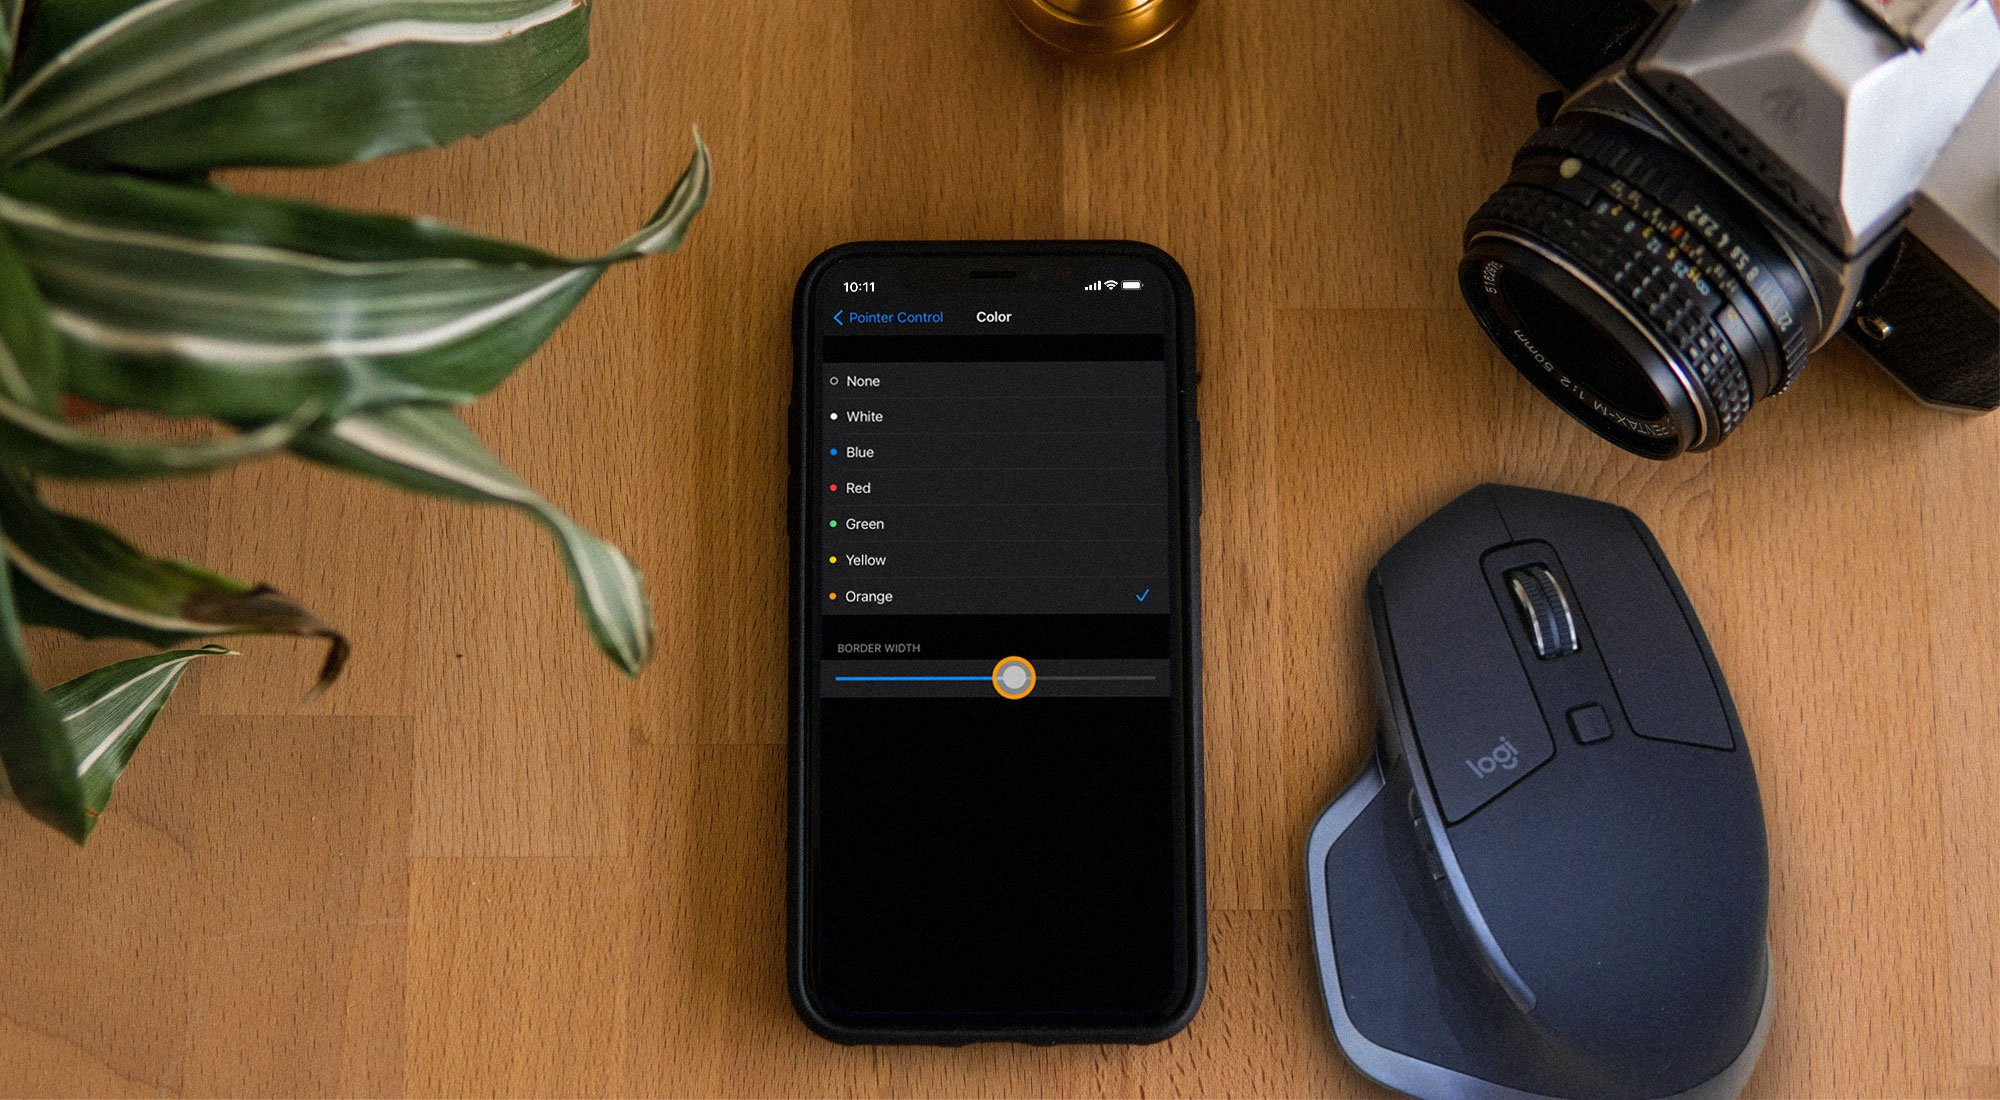 The Ultimate Guide to Customizing Your iPhone Mouse Setup